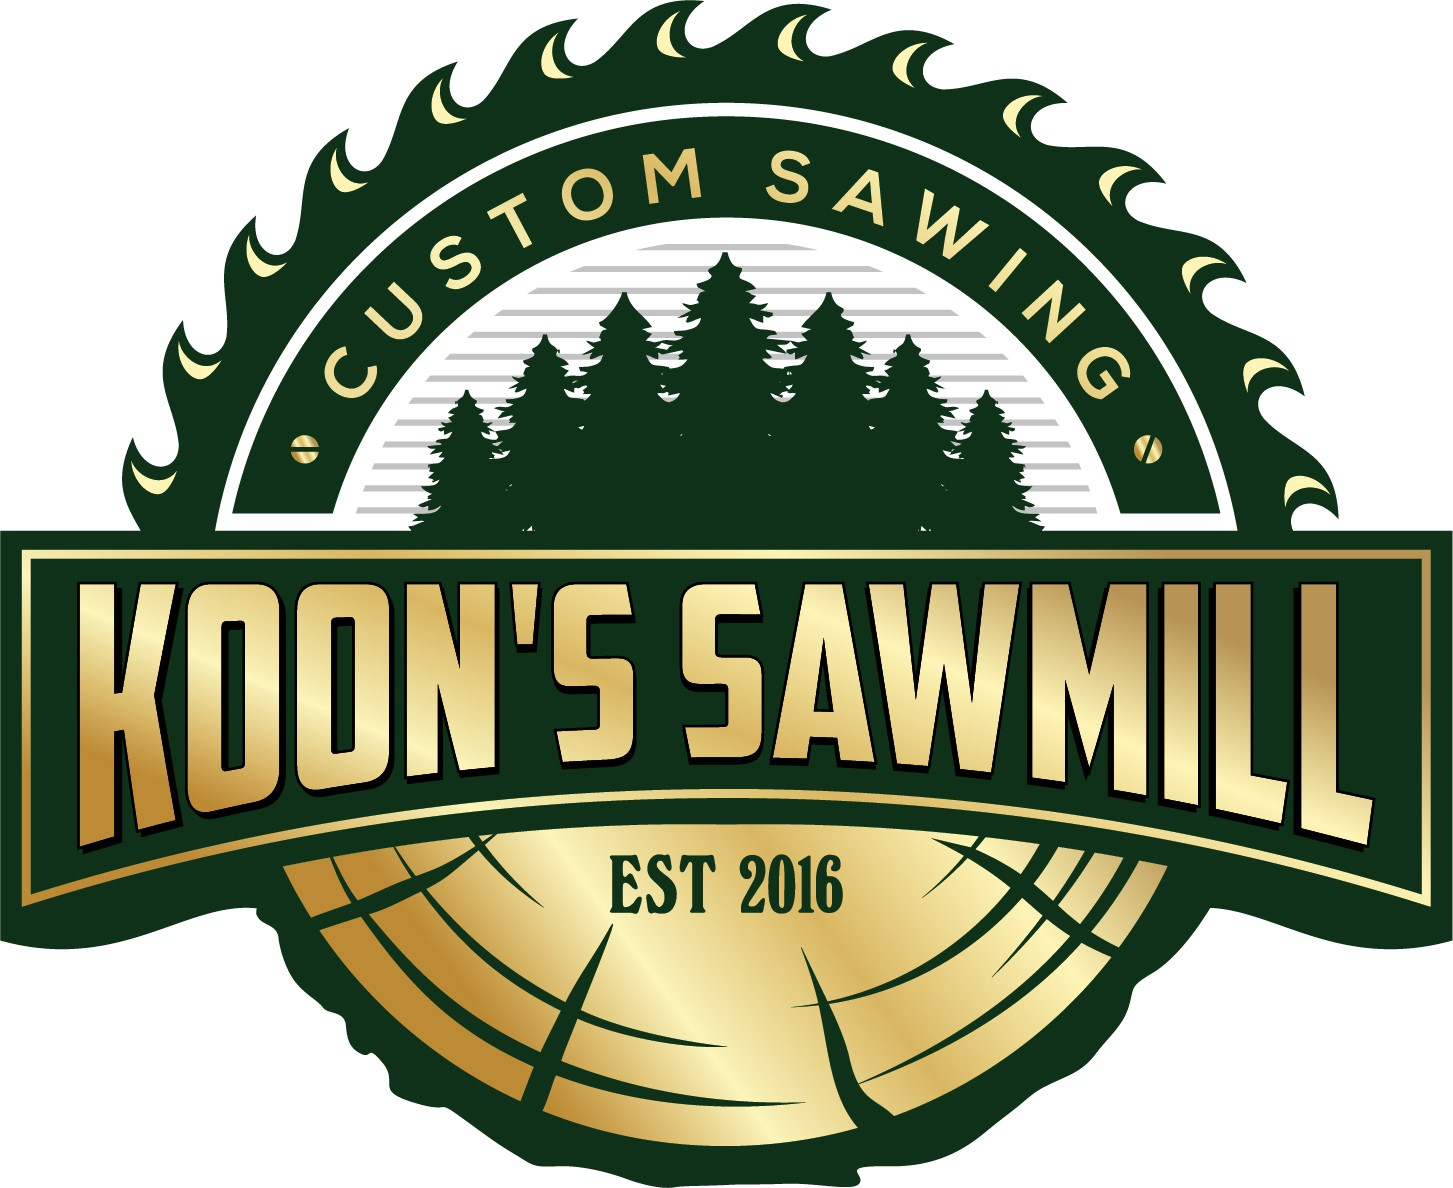 Design a modern logo with an old school feel for a sawmill company